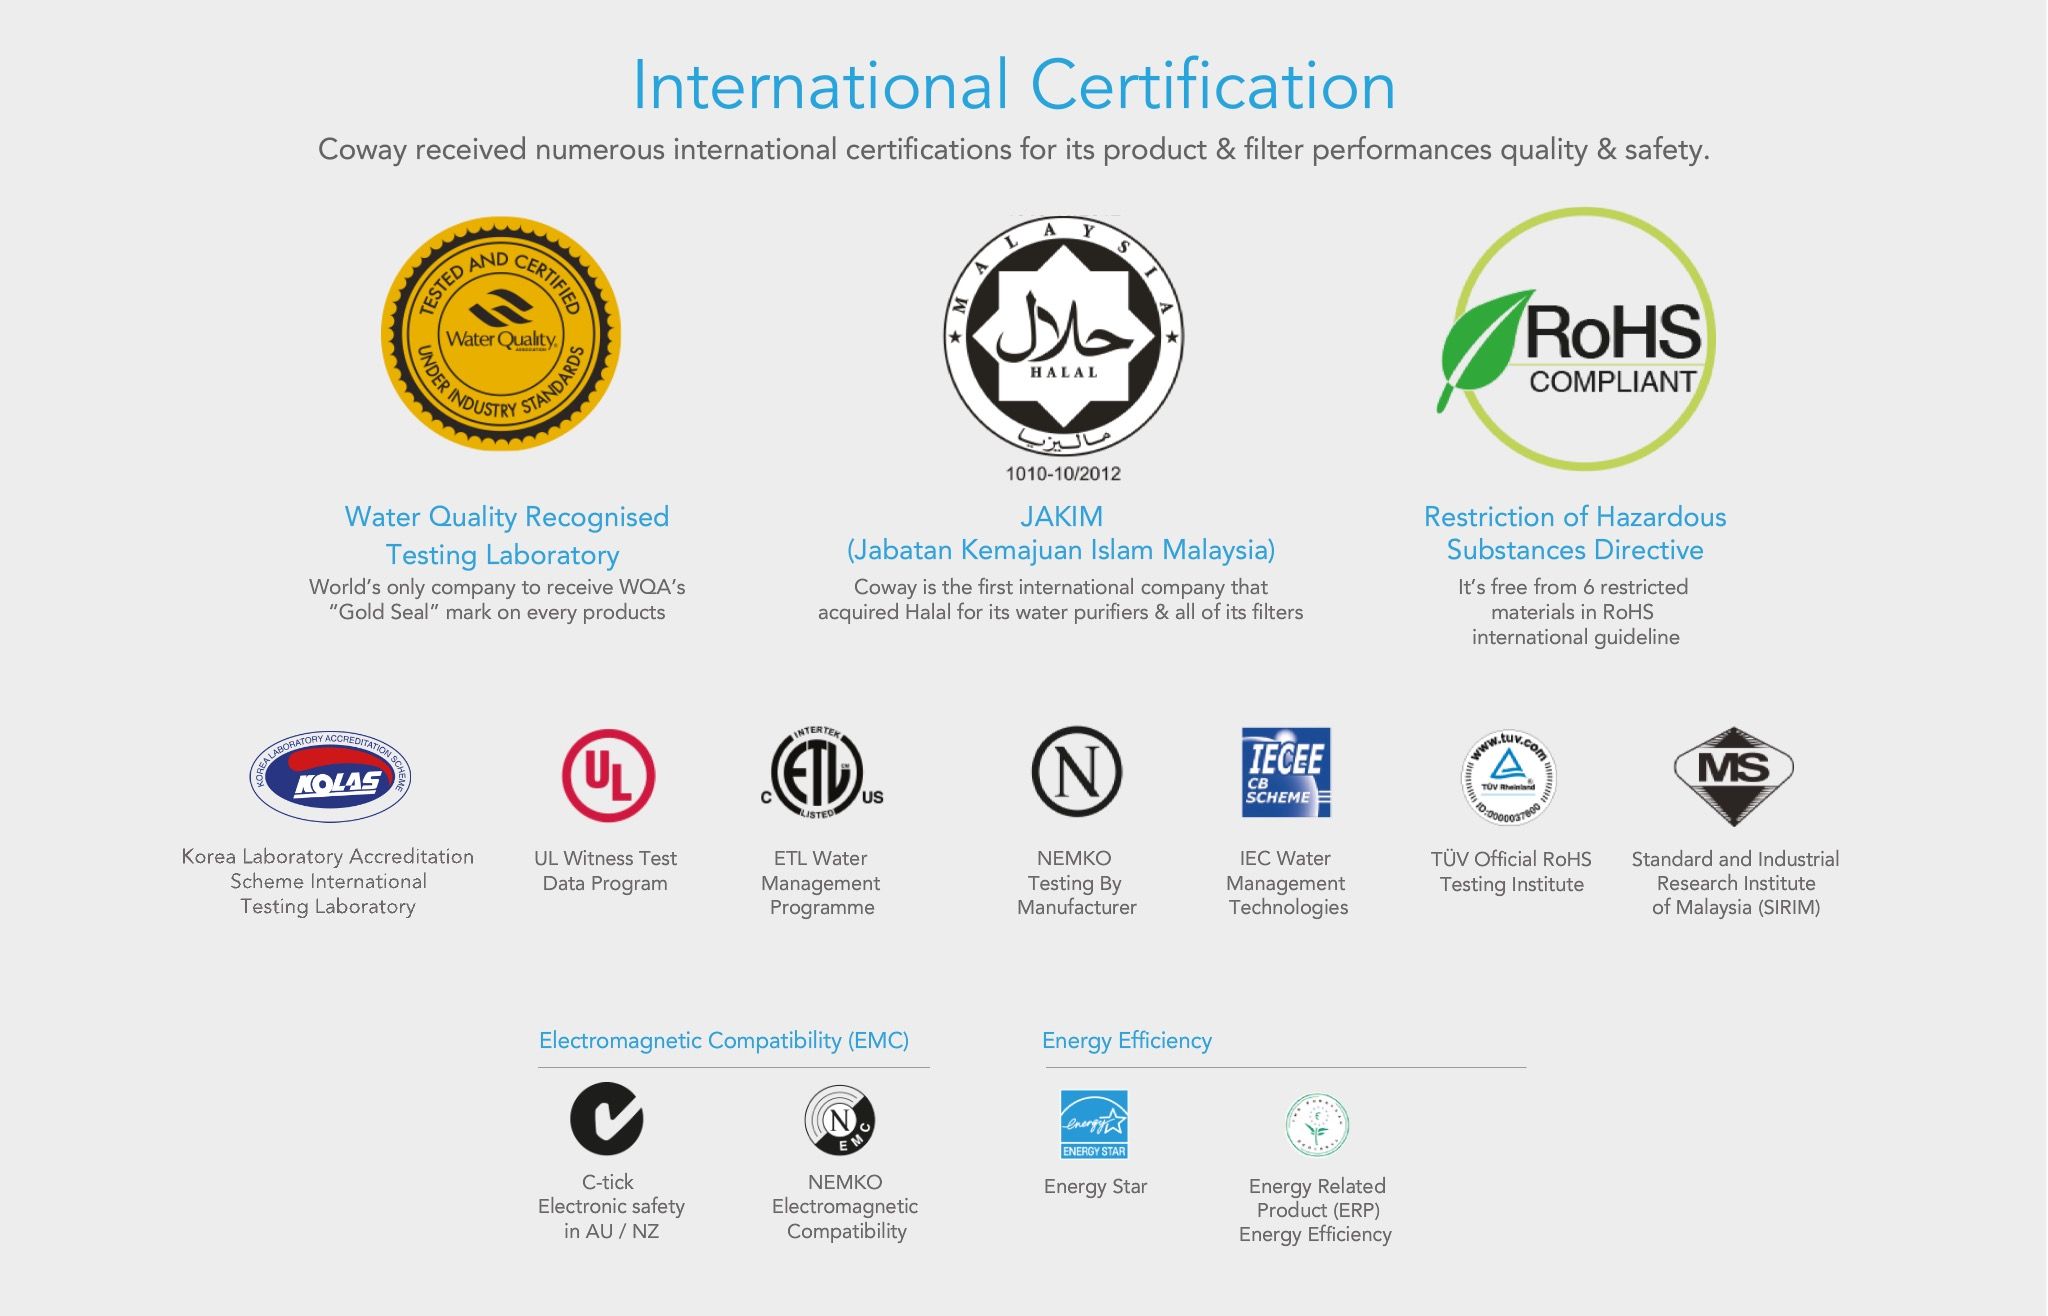 Coway Certification